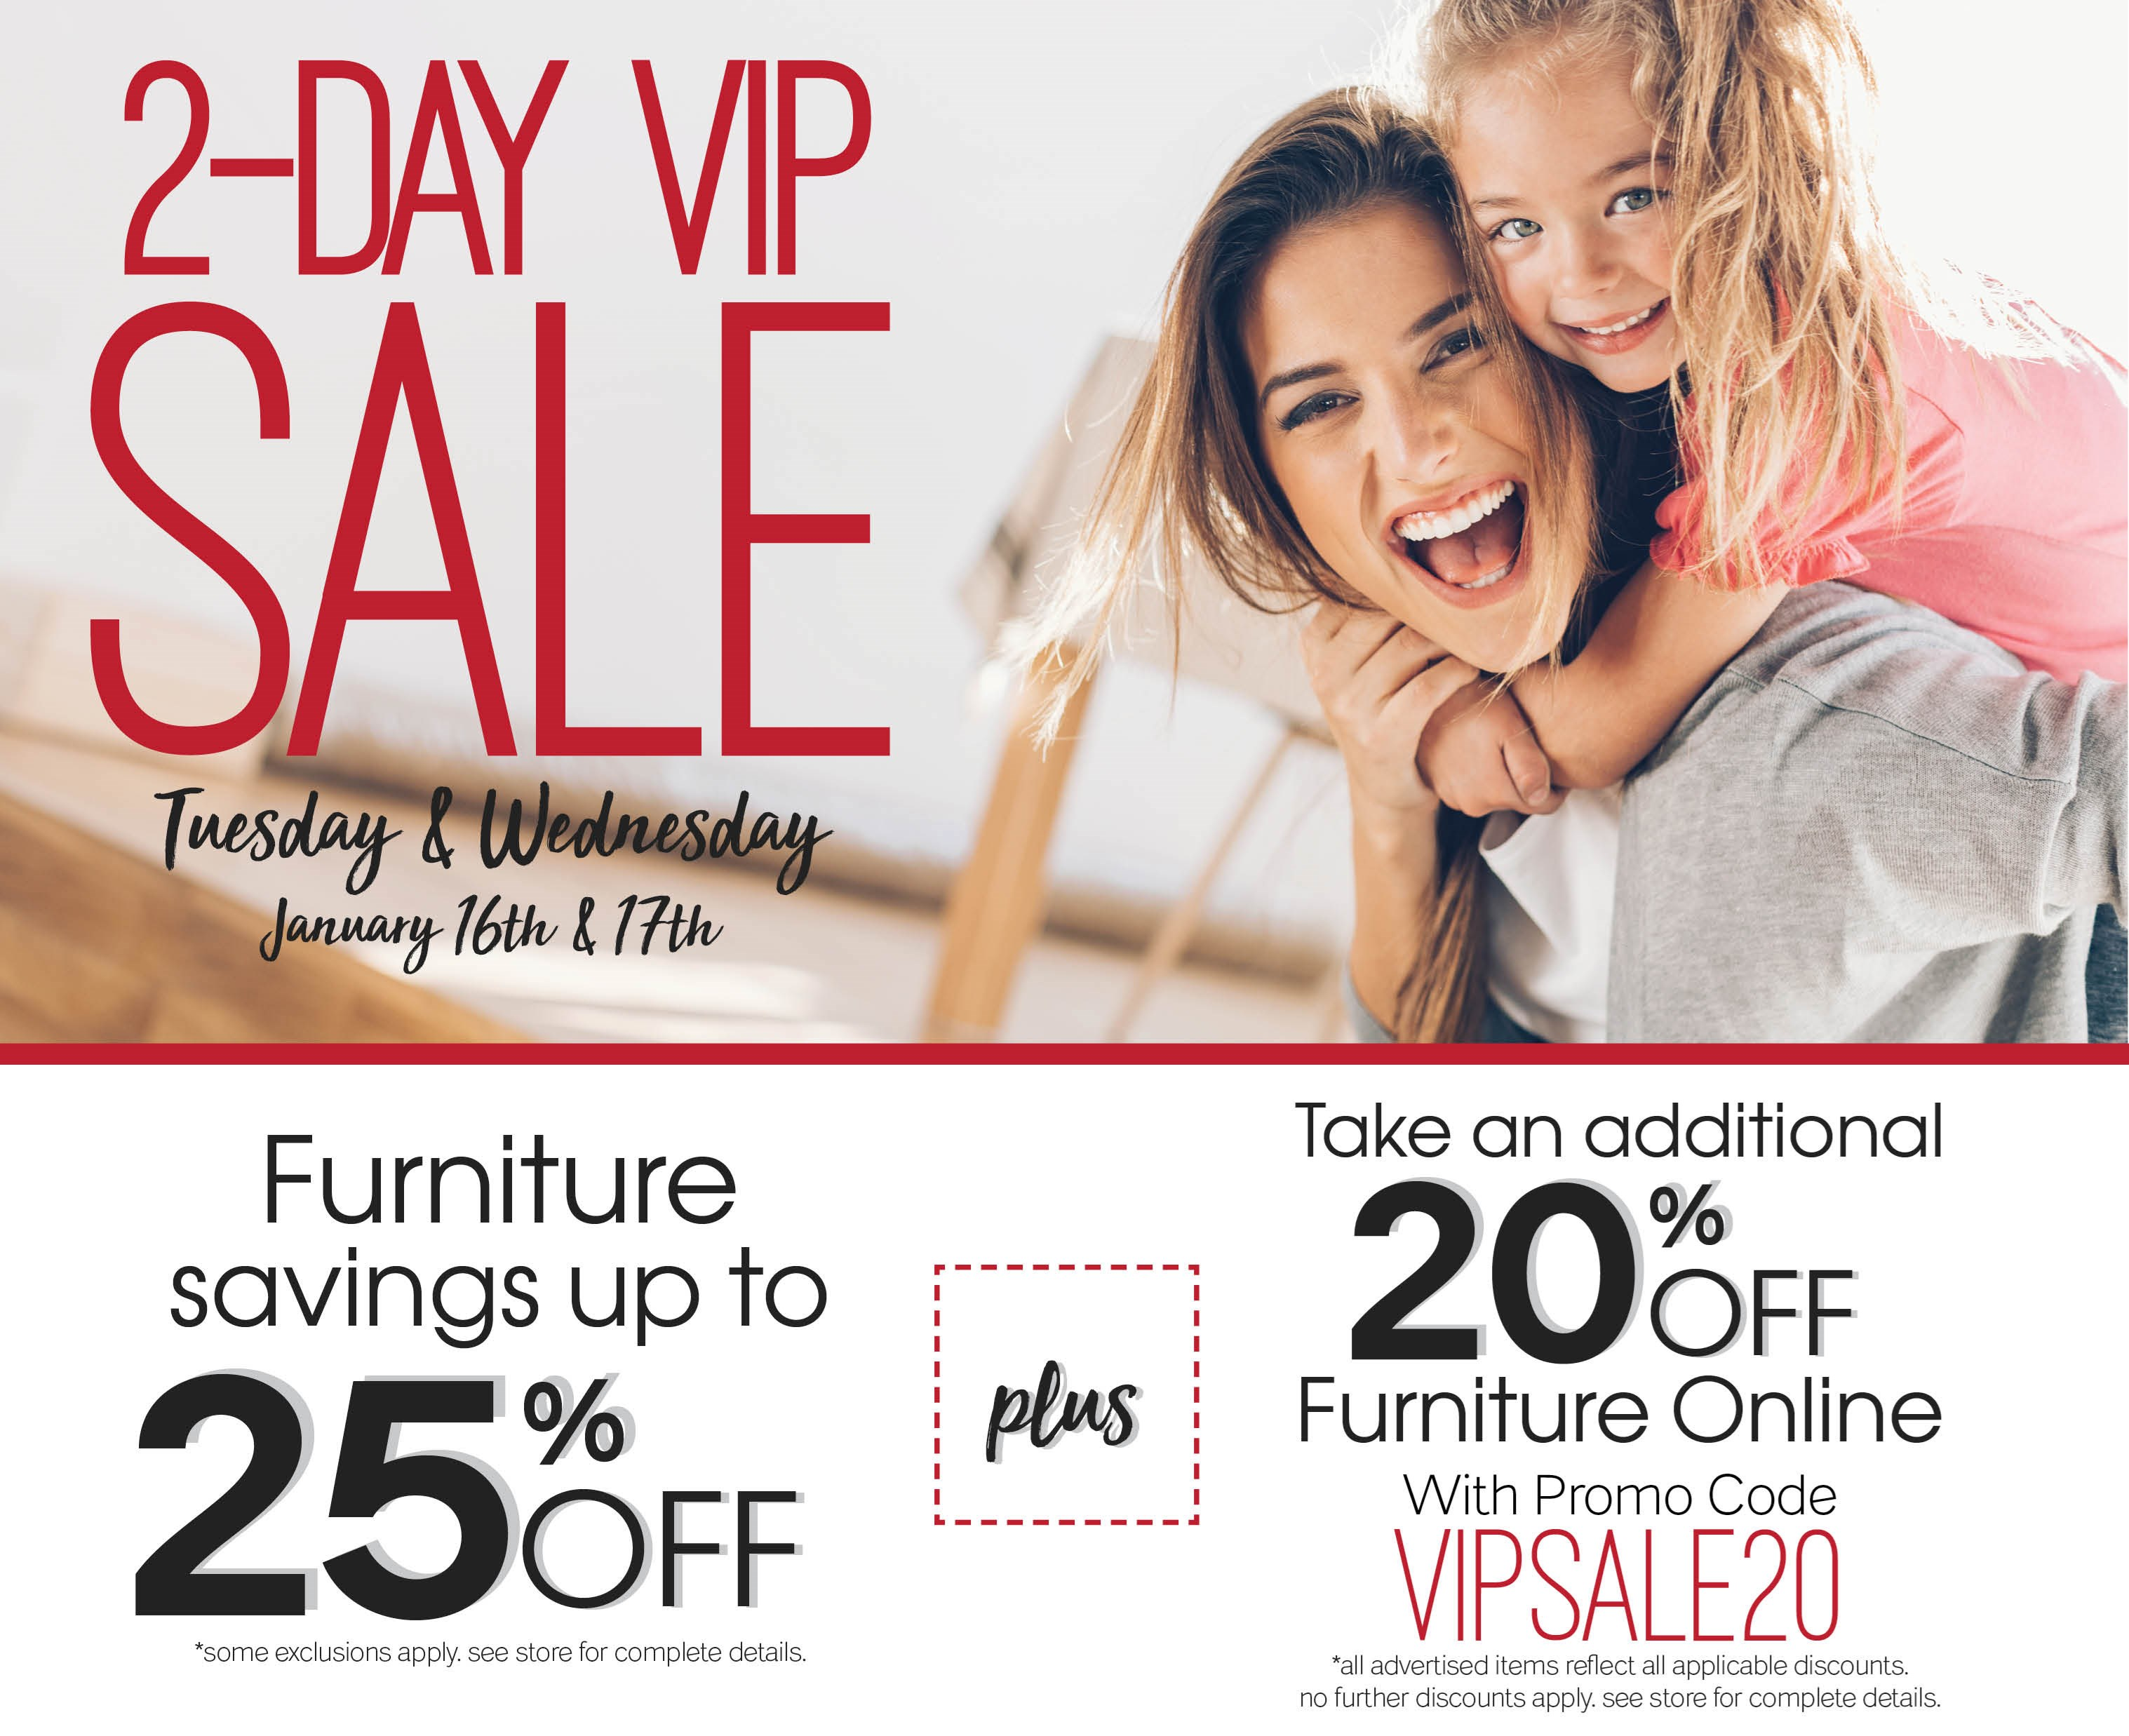 Furniture & ApplianceMart VIP Sale